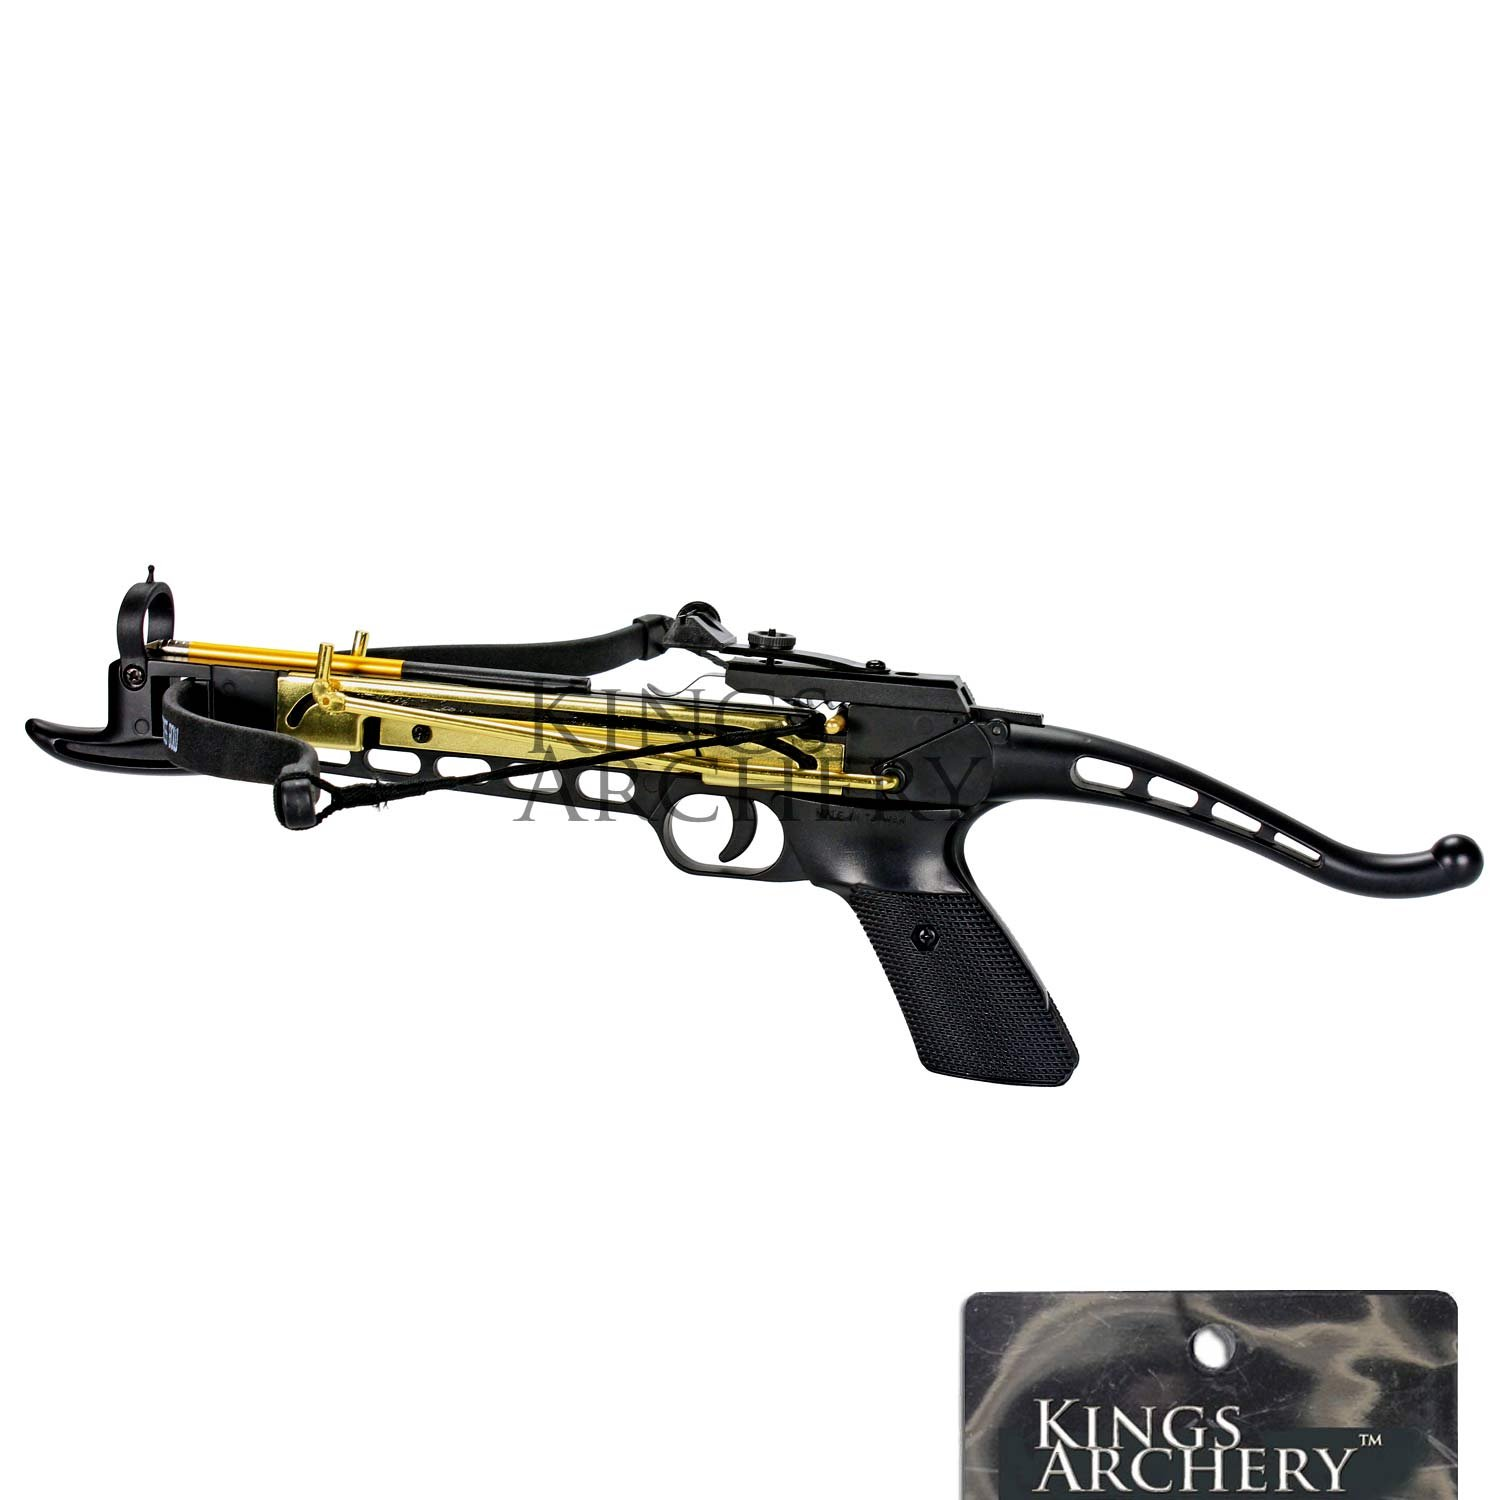 Crossbow Self-Cocking 80 LBS by KingsArchery® with Hunting Scope, 3 Aluminium Arrow Bolts, and Bonus 120-pack of Colored PVC Arrow Bolts + KingsArchery® Warranty by KingsArchery (Image #3)